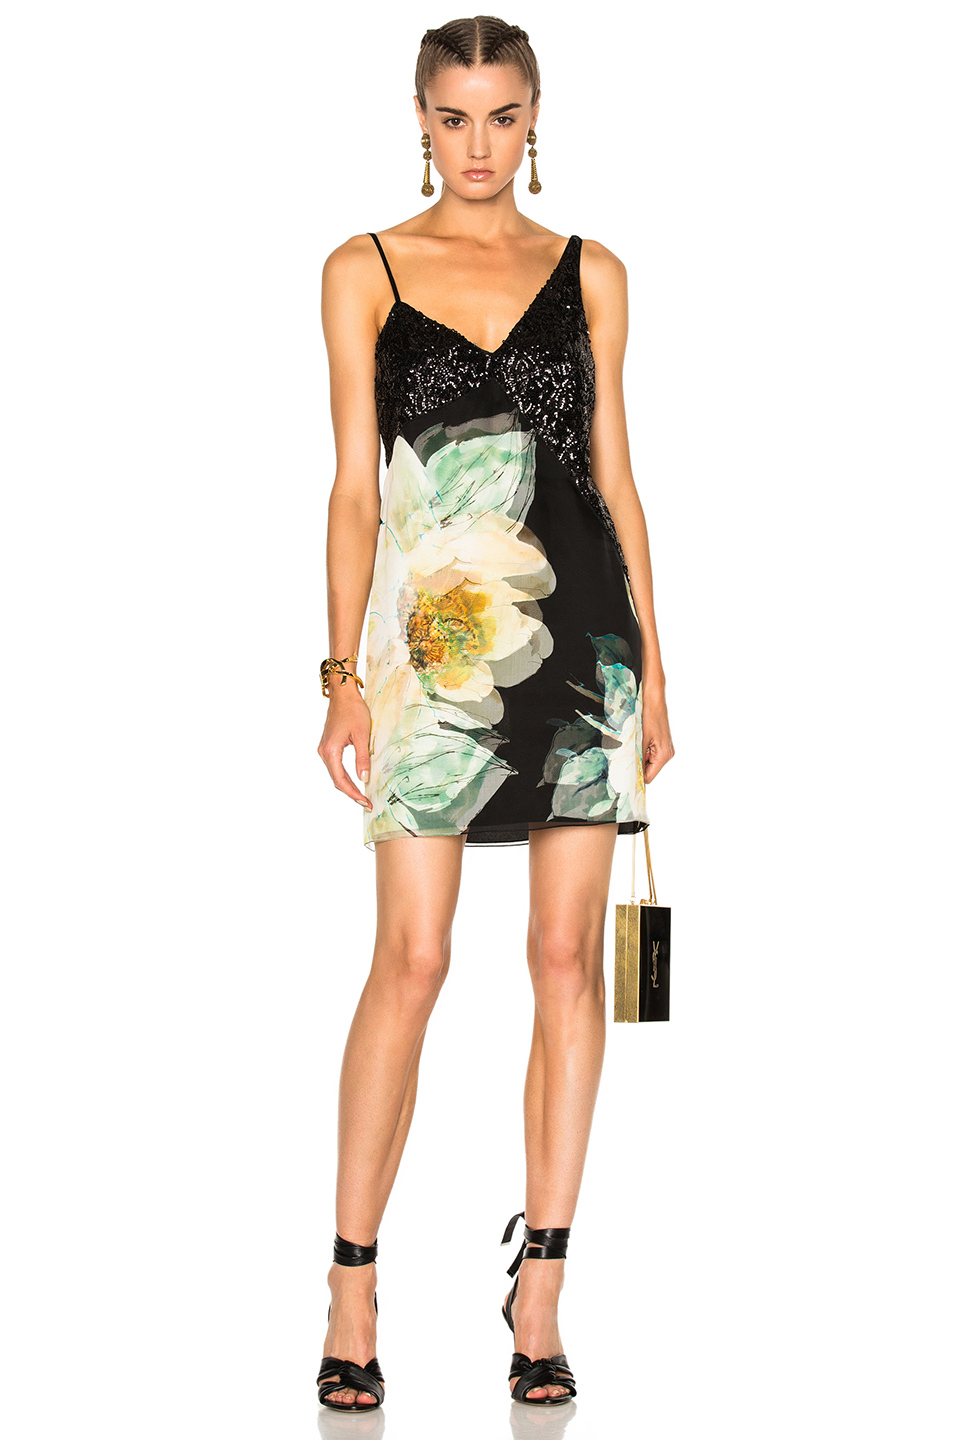 Lanvin Sleeveless Mini Dress in Black,Floral,Green